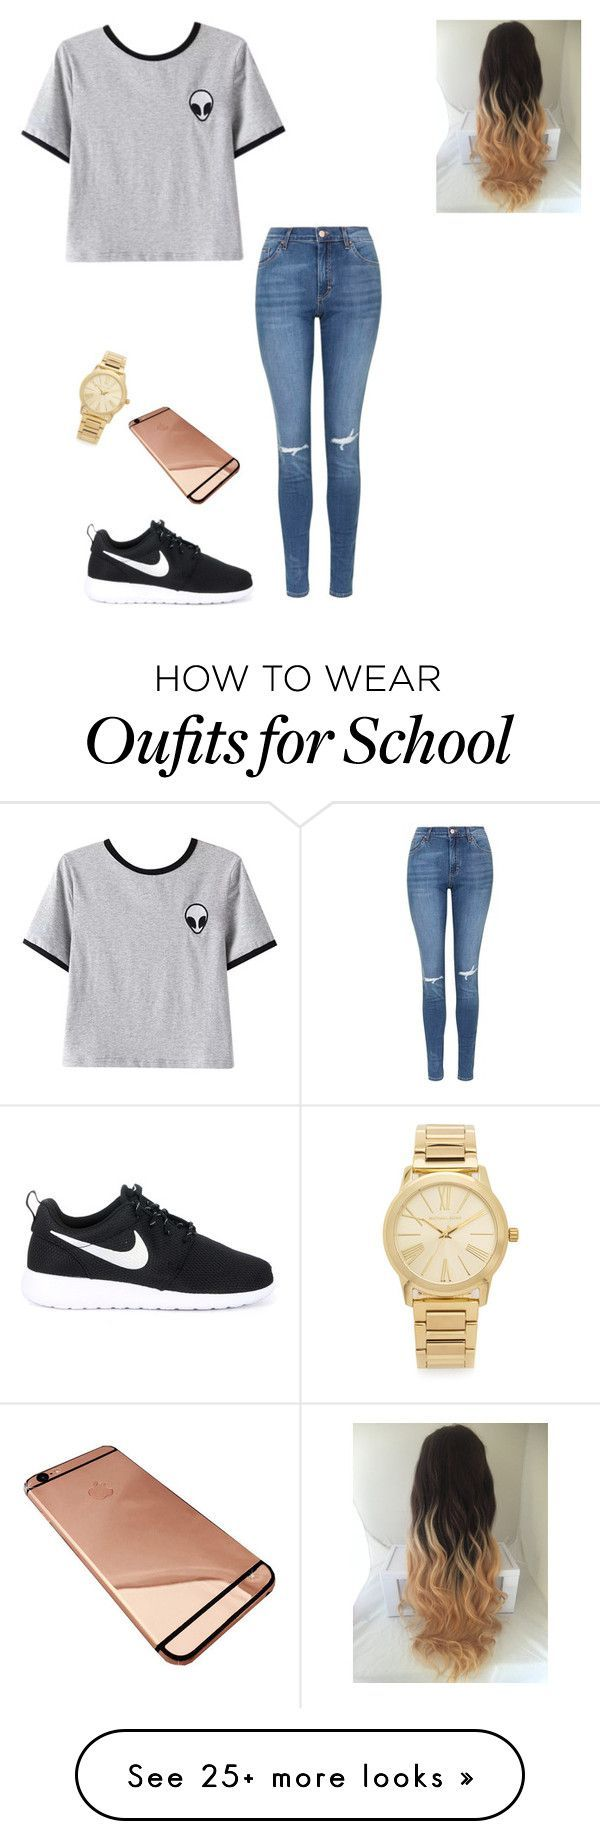 """School Outfit"" by marina-nina-1 on Polyvore featuring Chicnova Fashion, Topshop, NIKE and Michael Kors"